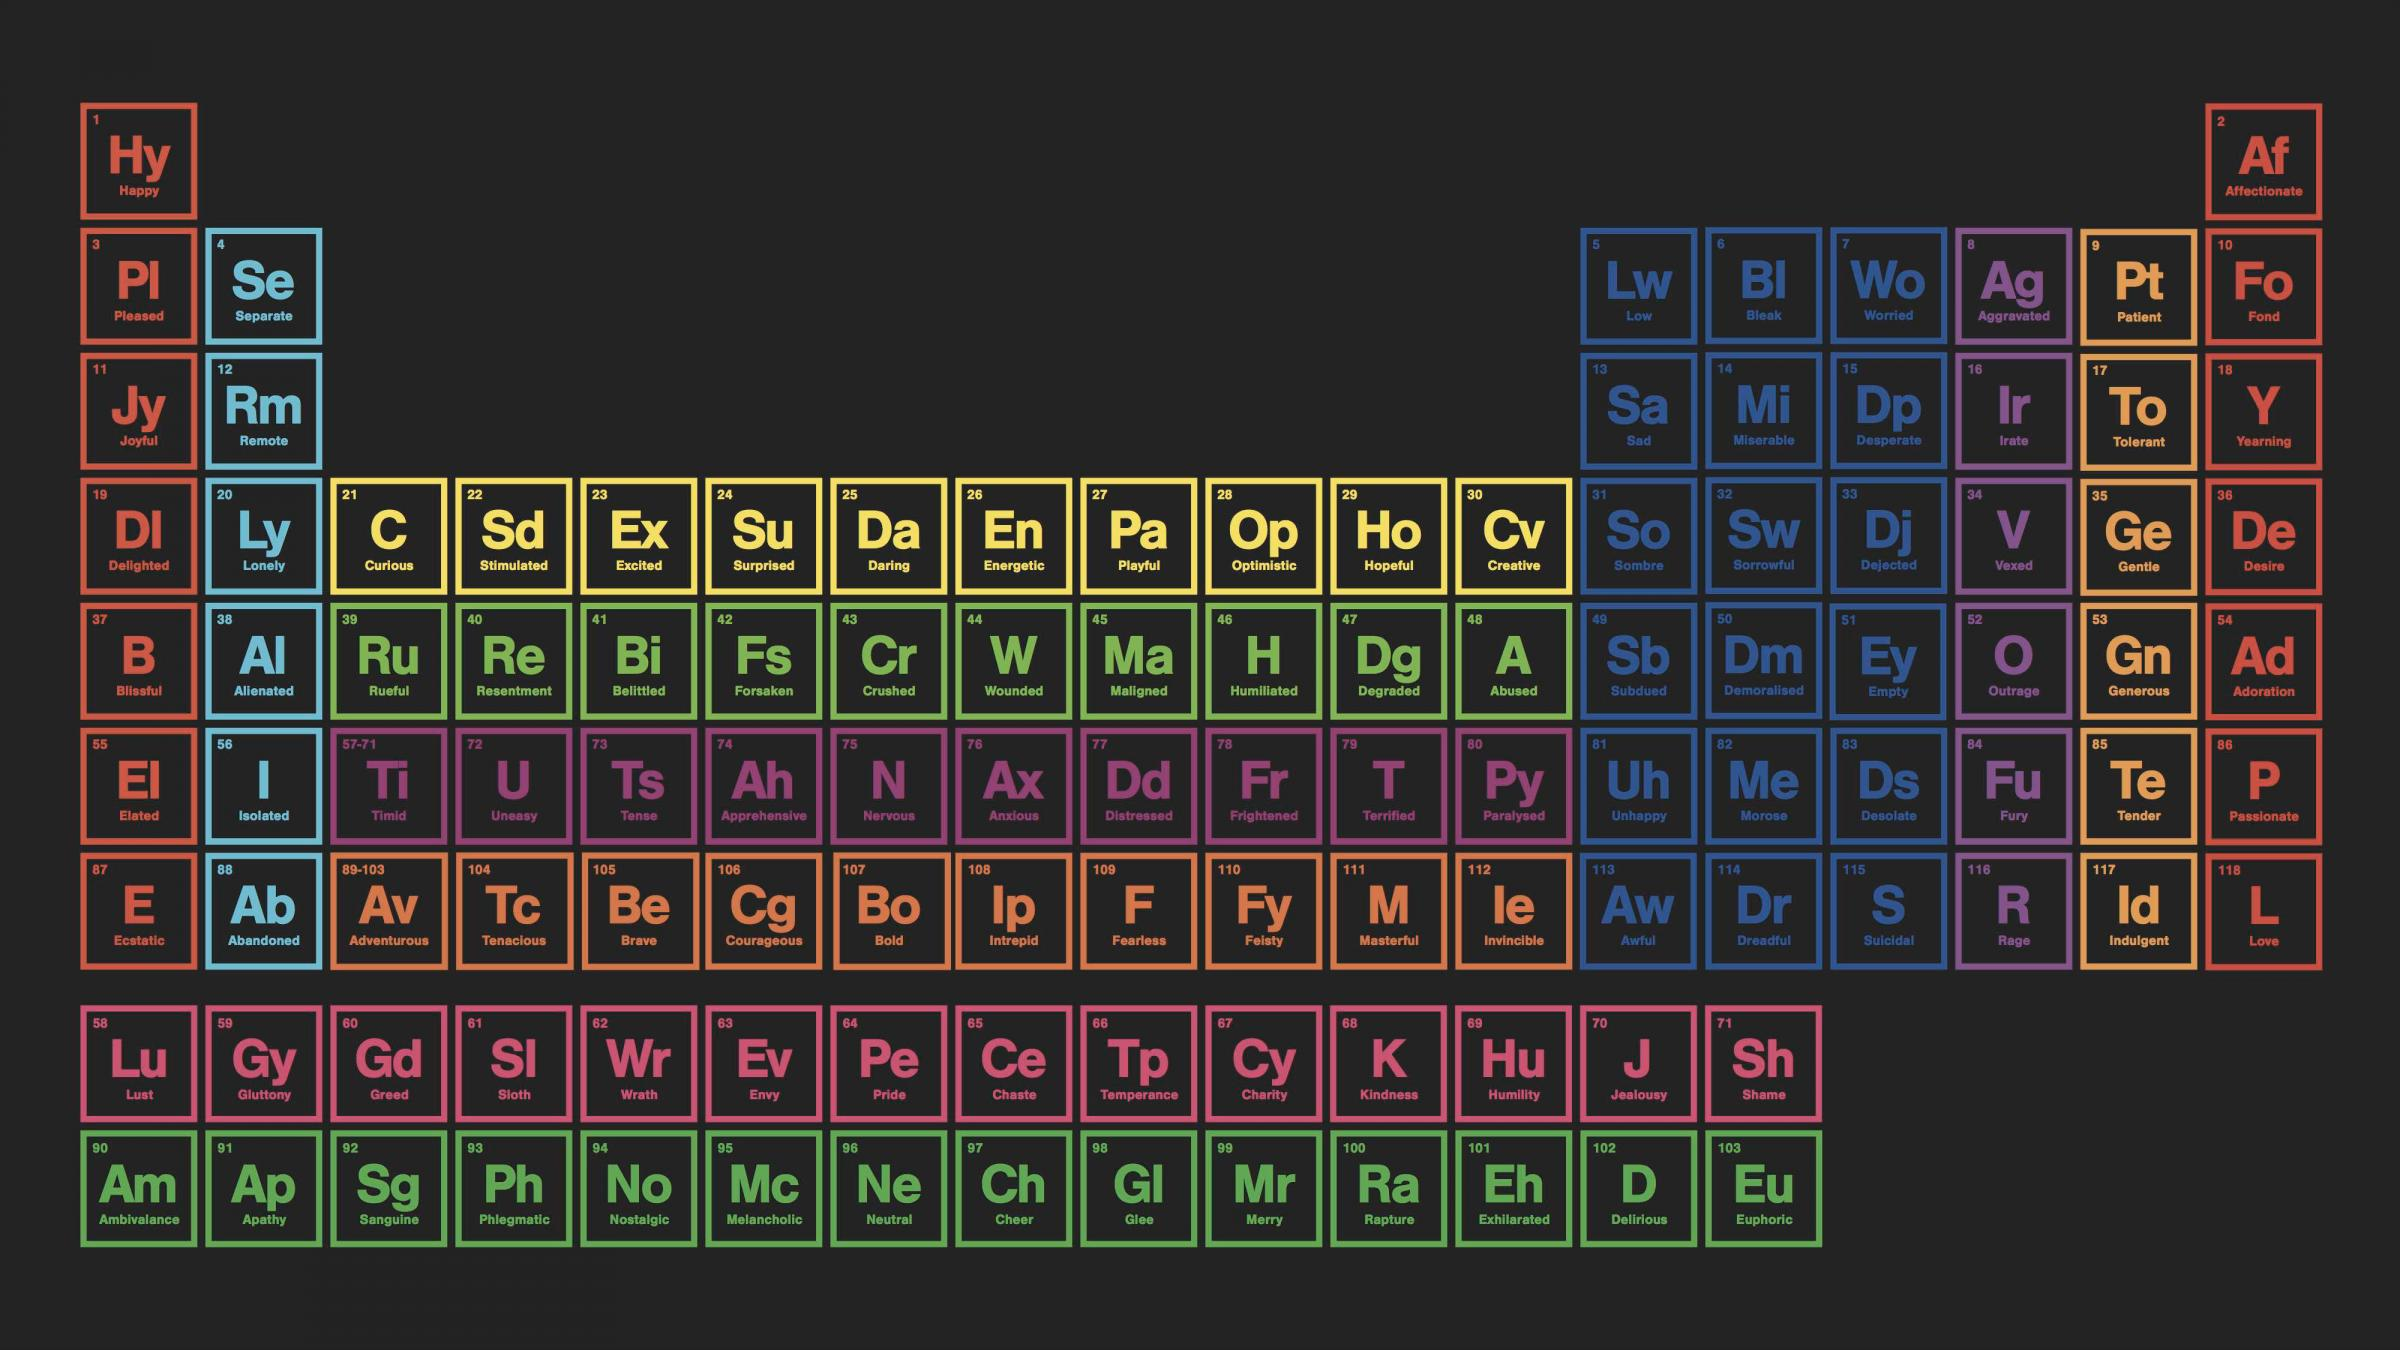 Sagacity: The Periodic Table of Emotions